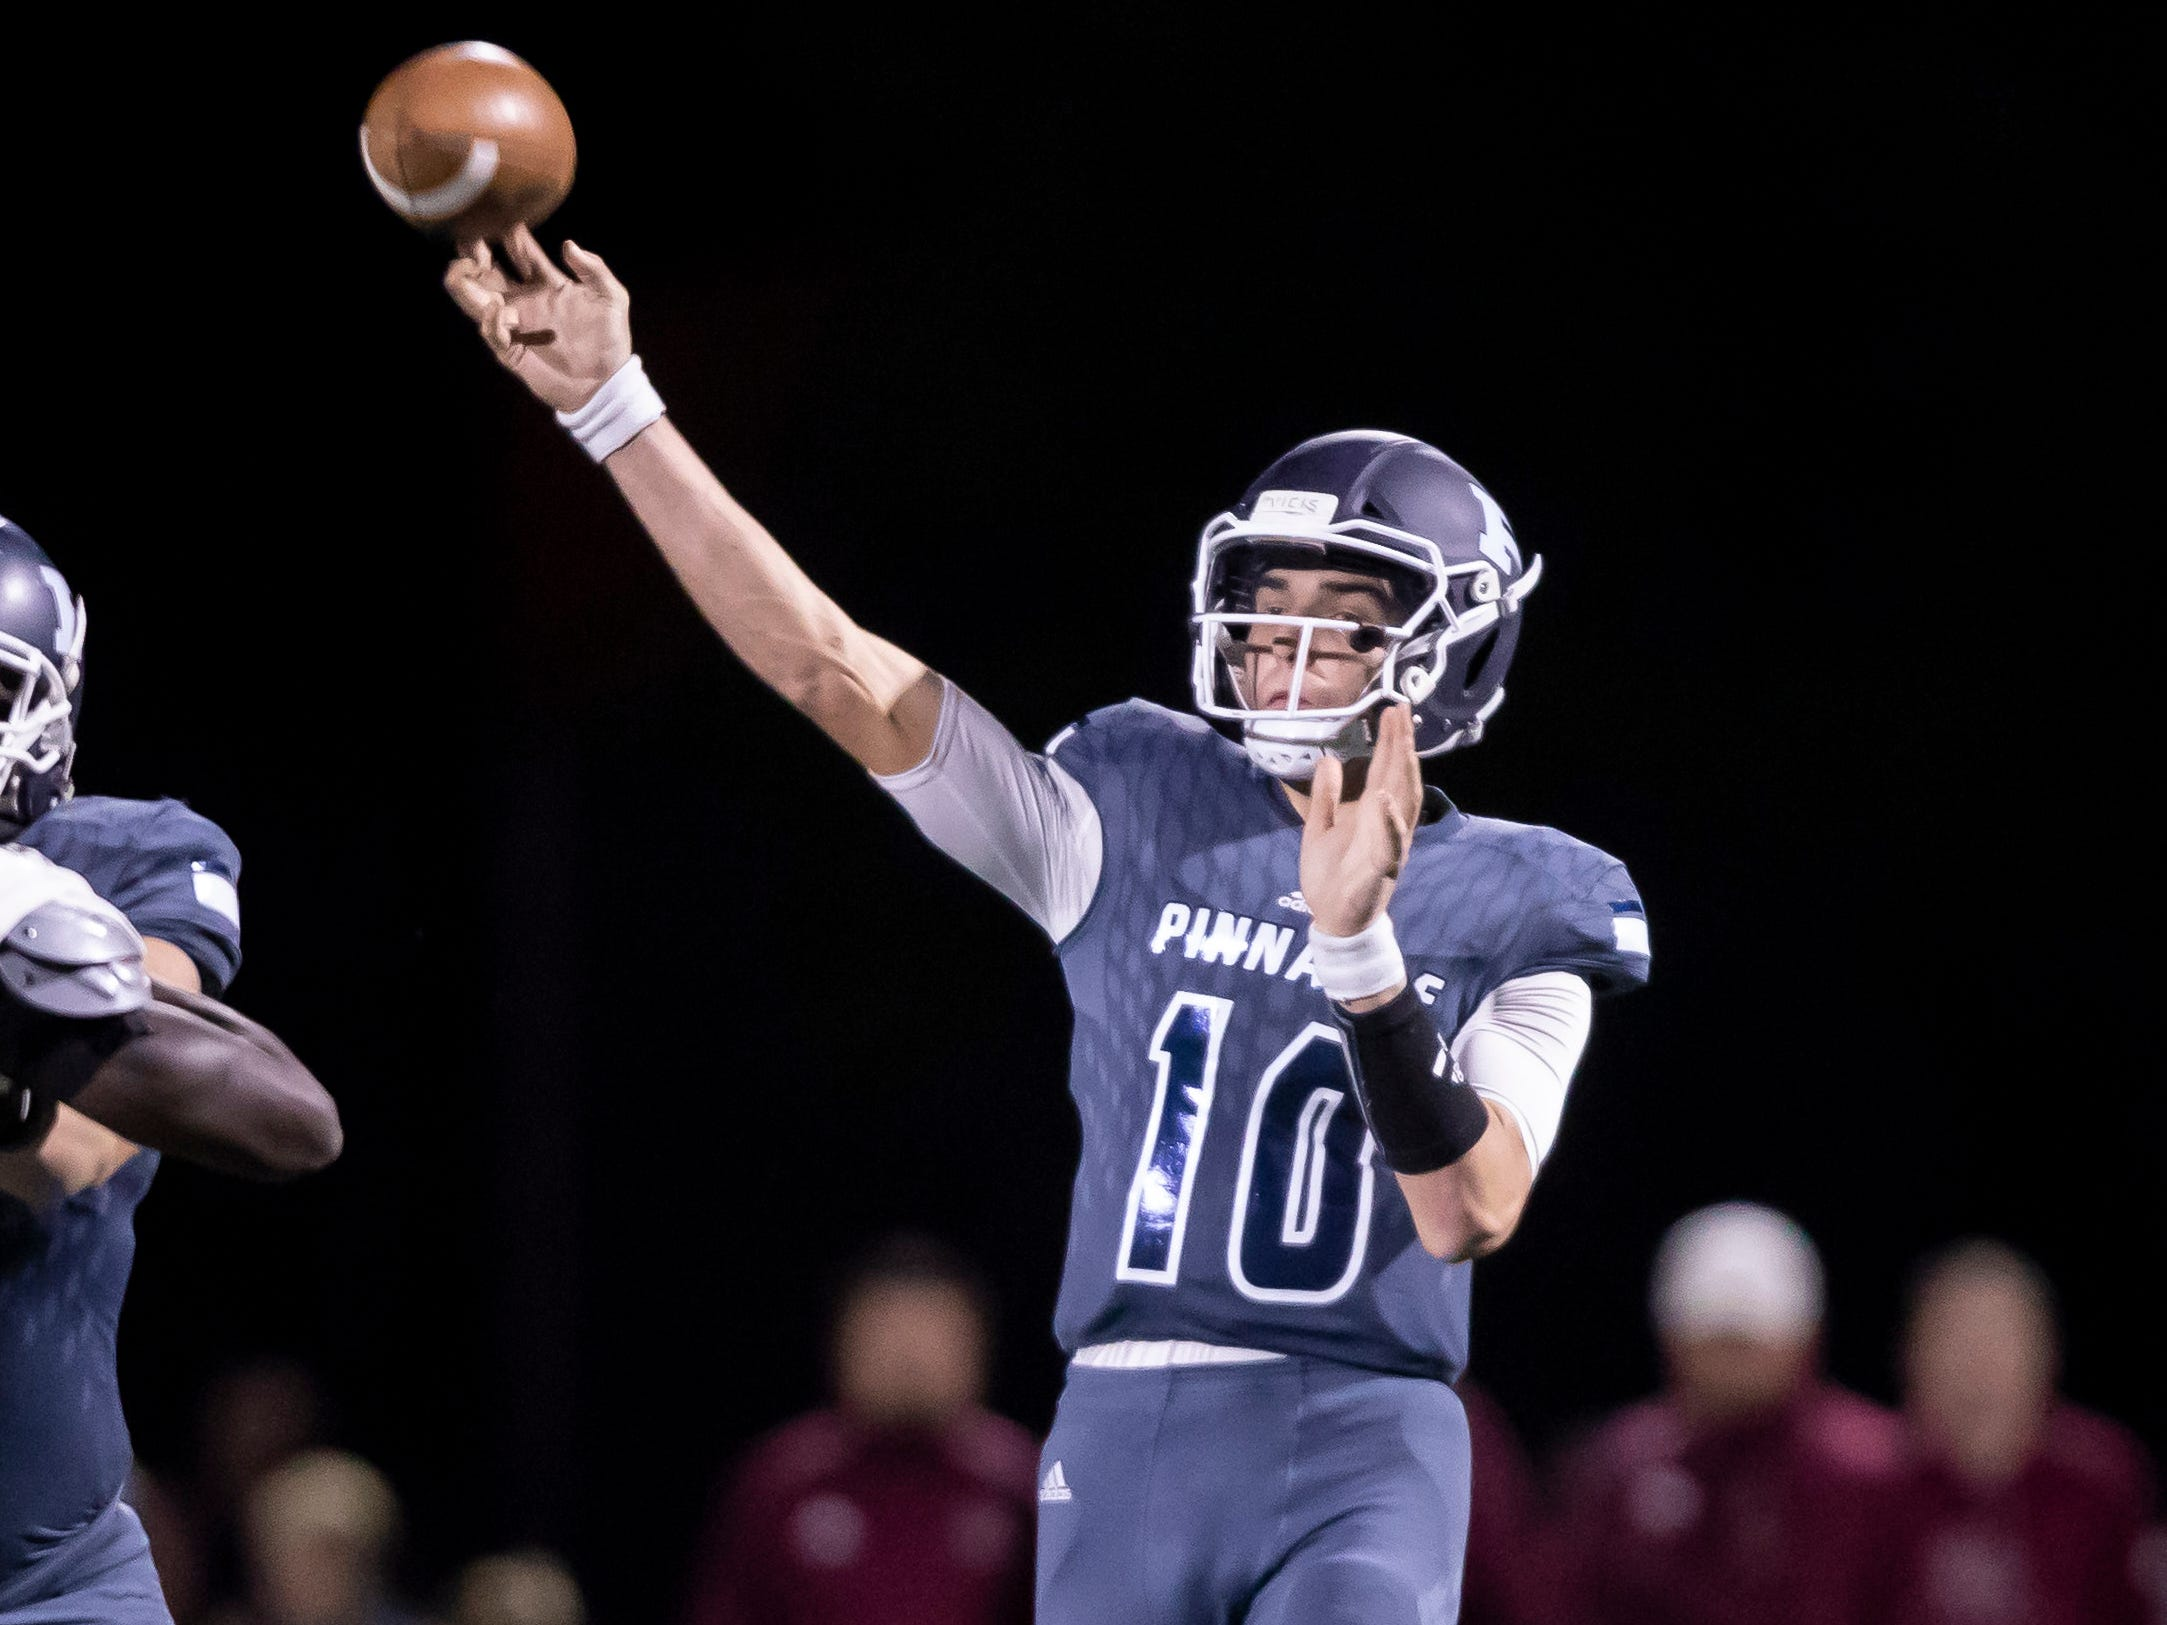 Junior quarterback Jd Johnson (10) of the Pinnacle Pioneers throws a pass during the playoff game against the Red Mountain Mountain Lions at Pinnacle High School on Friday, November 9, 2018 in Phoenix, Arizona. #azhsfb